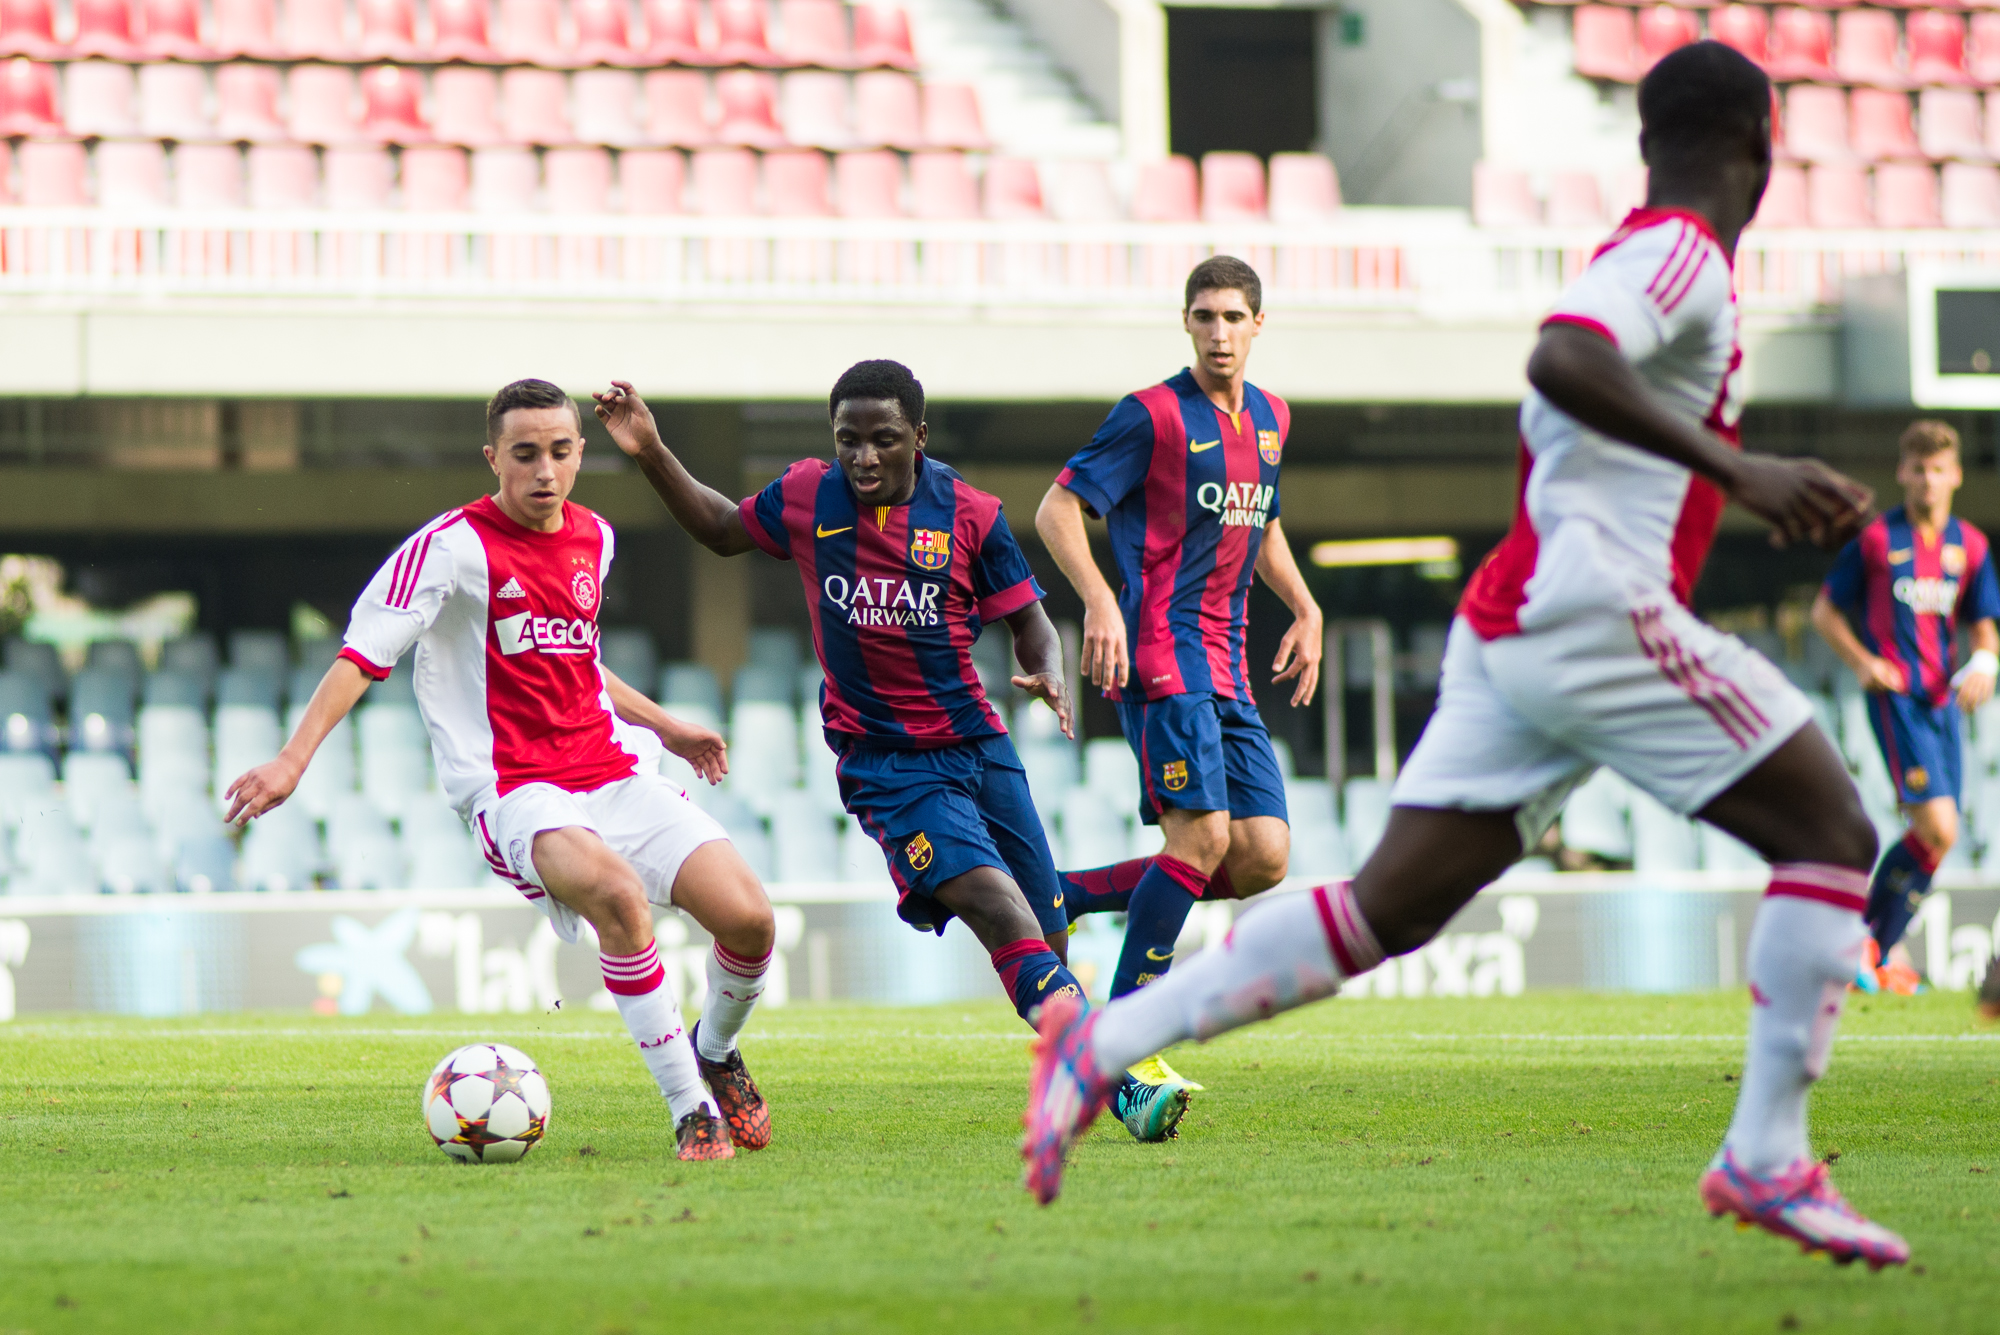 Nouri Enguene Youth League Ajax Eduardo Ferrer Alcover